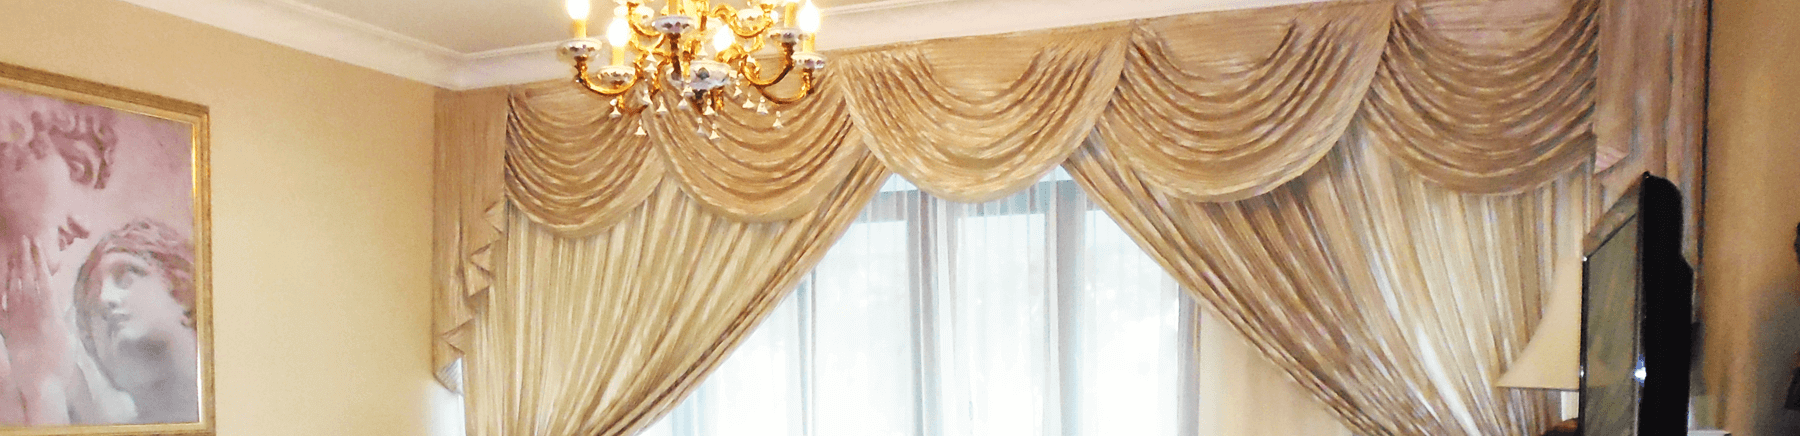 Curtains Brighton Curtain Repairs Brighton Pj Curtains